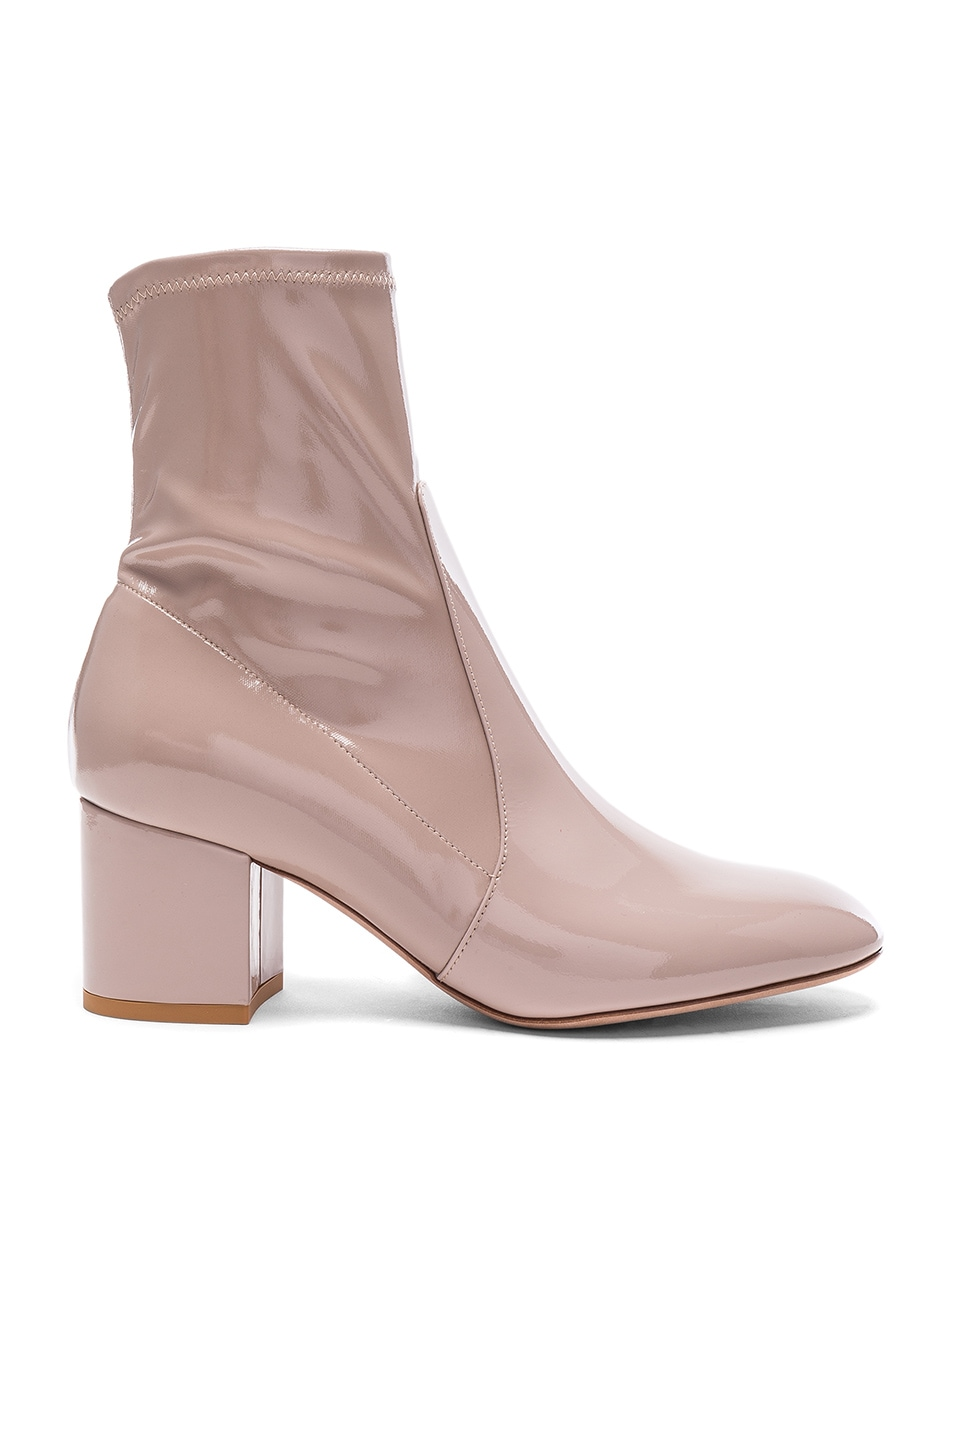 Image 1 of Valentino Patent Leather Booties in Poudre